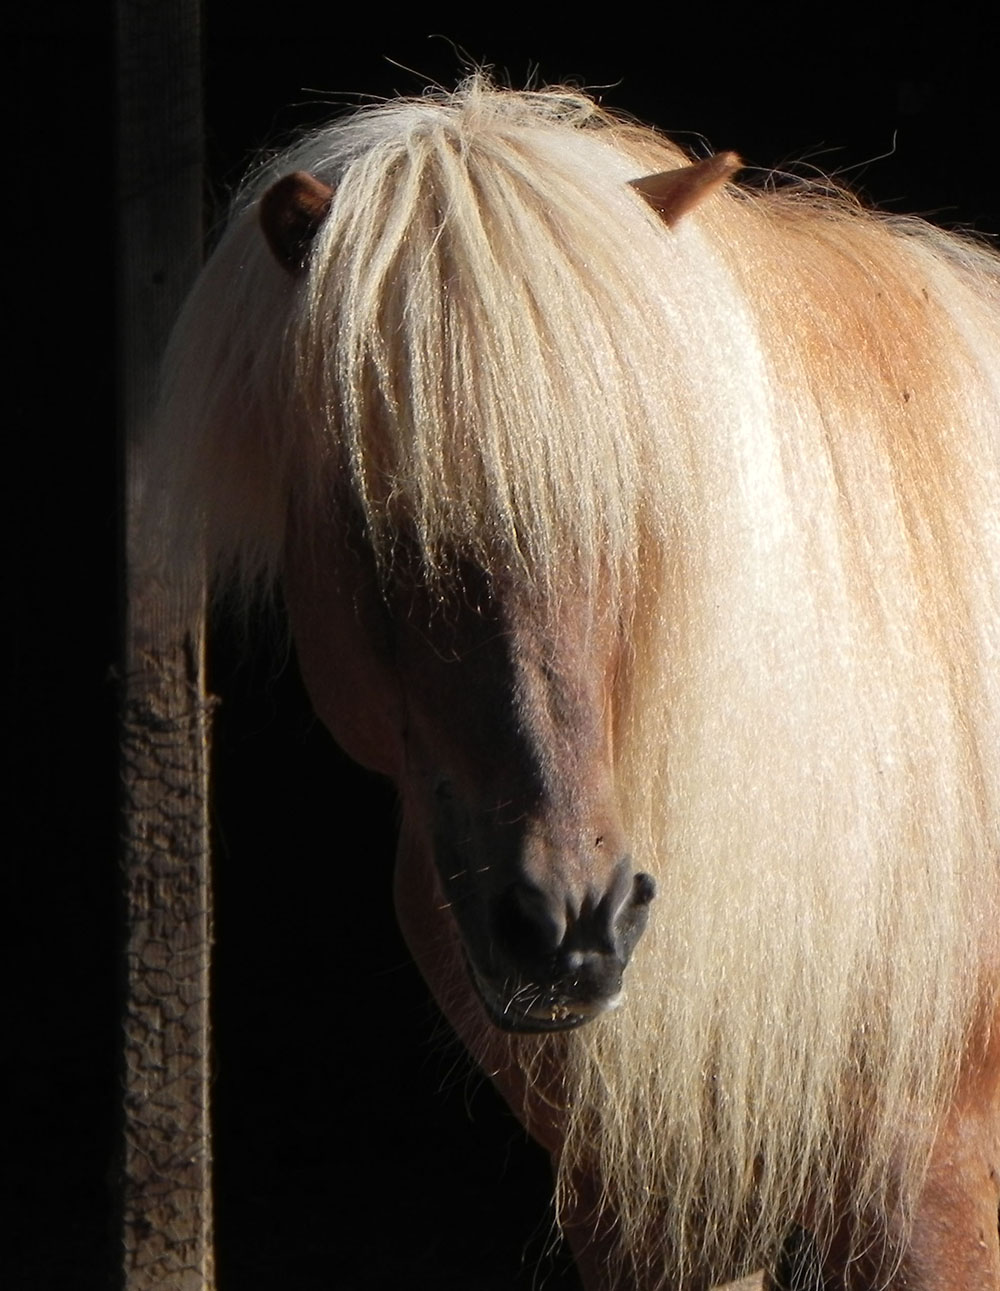 Glamour shot of Gloi, an Icelandic horse.